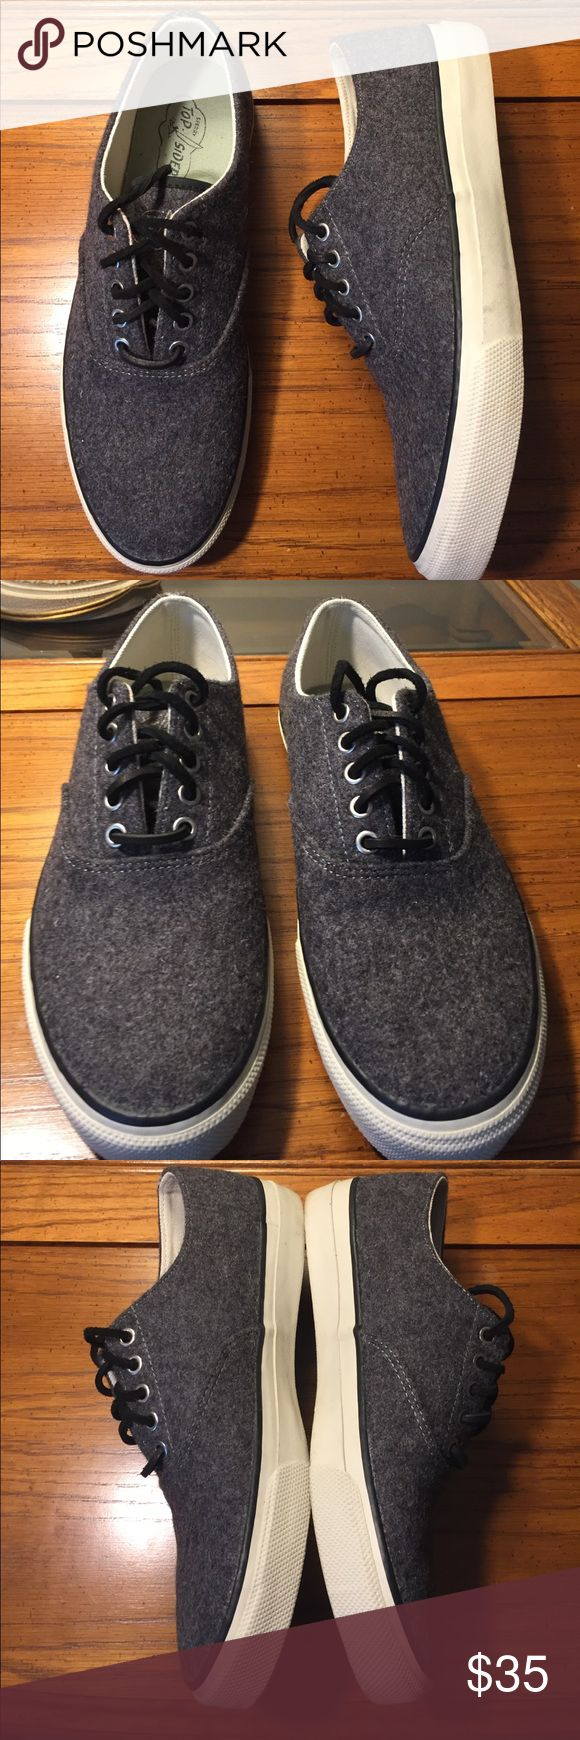 Men's Sperry Top-Sider Grey Wool Sneaker Excellent condition.Men's 8 1/2 Sperry Top-sider shoe.  - High Quality Cotton Canvas Upper for Breathability and Comfort - Padded Tongue and Collar for Added Comfort Around the Foot Sperry Top-Sider Shoes Sneakers